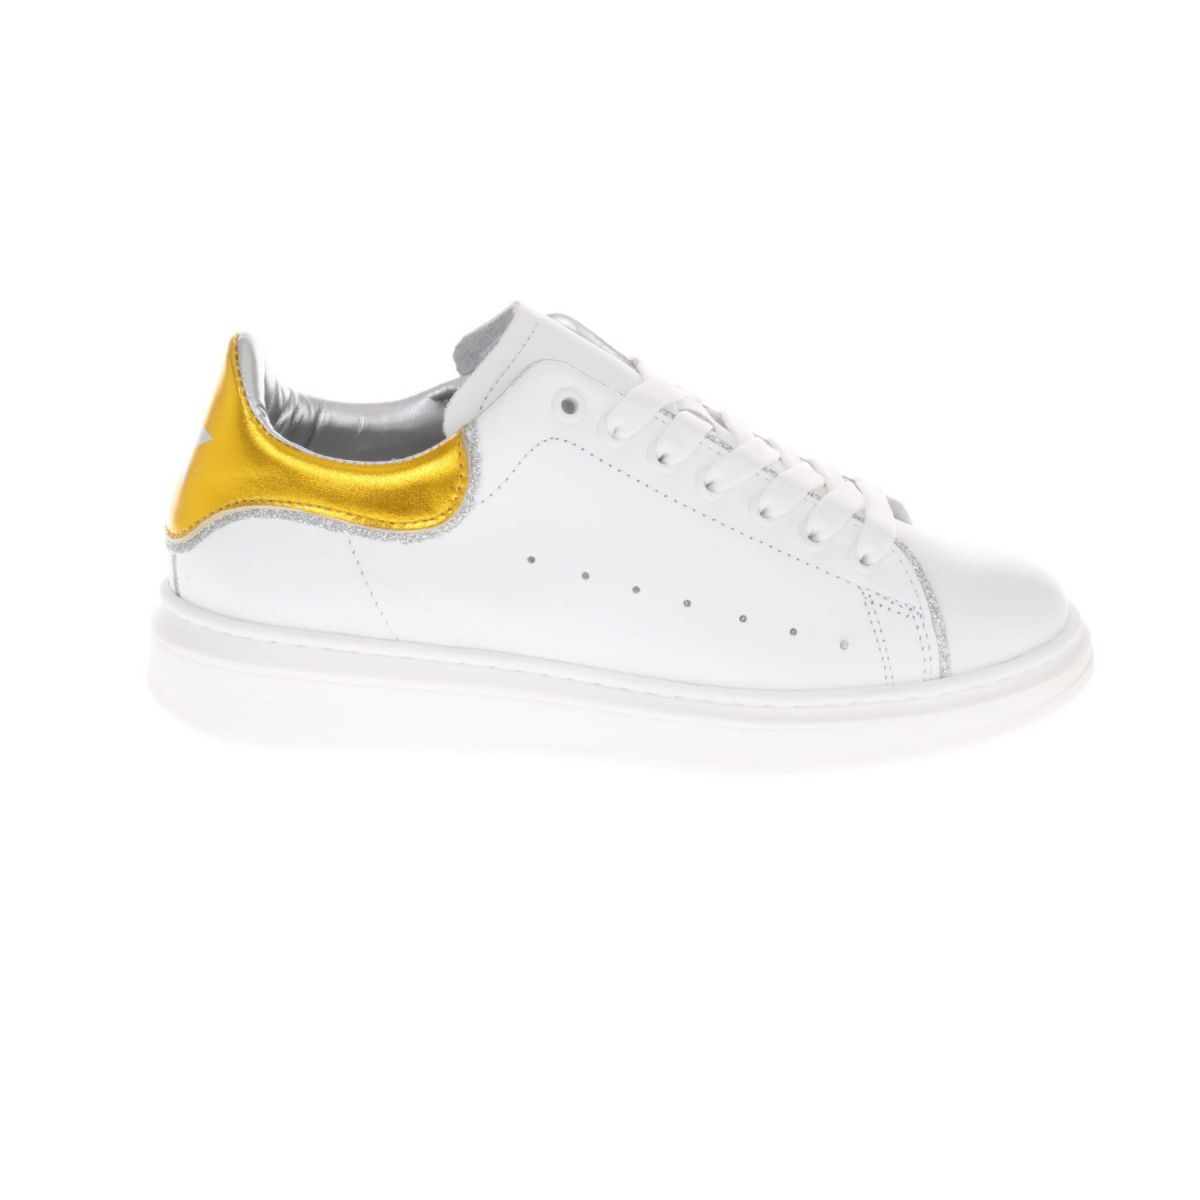 HIP H1219 Sneakers Wit Geel Metallic